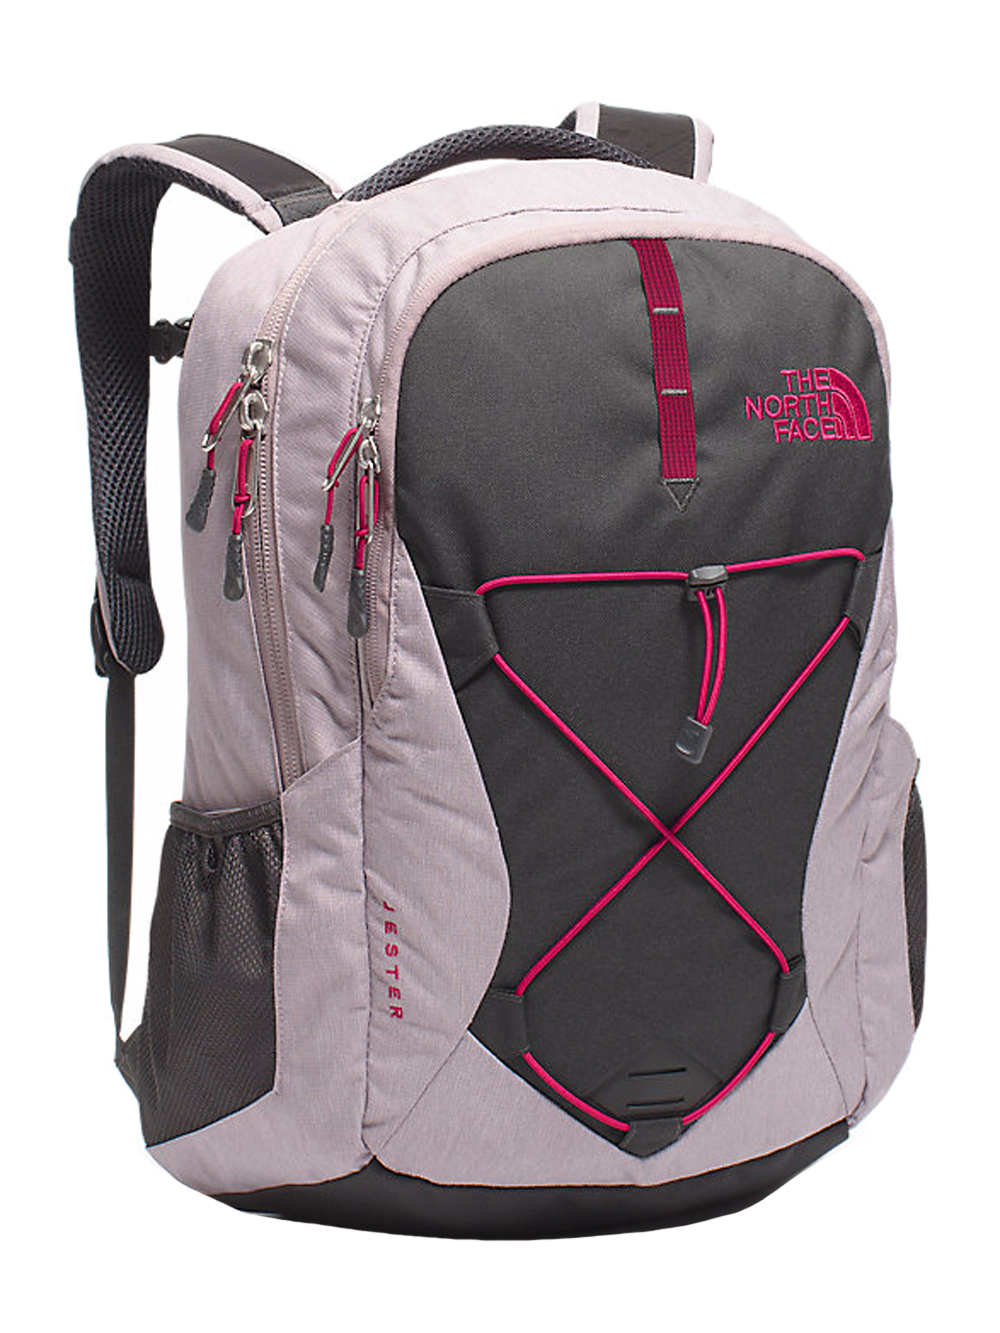 The North Face Jester Backpack - Women's - quail gray heather/cerise pink, one size